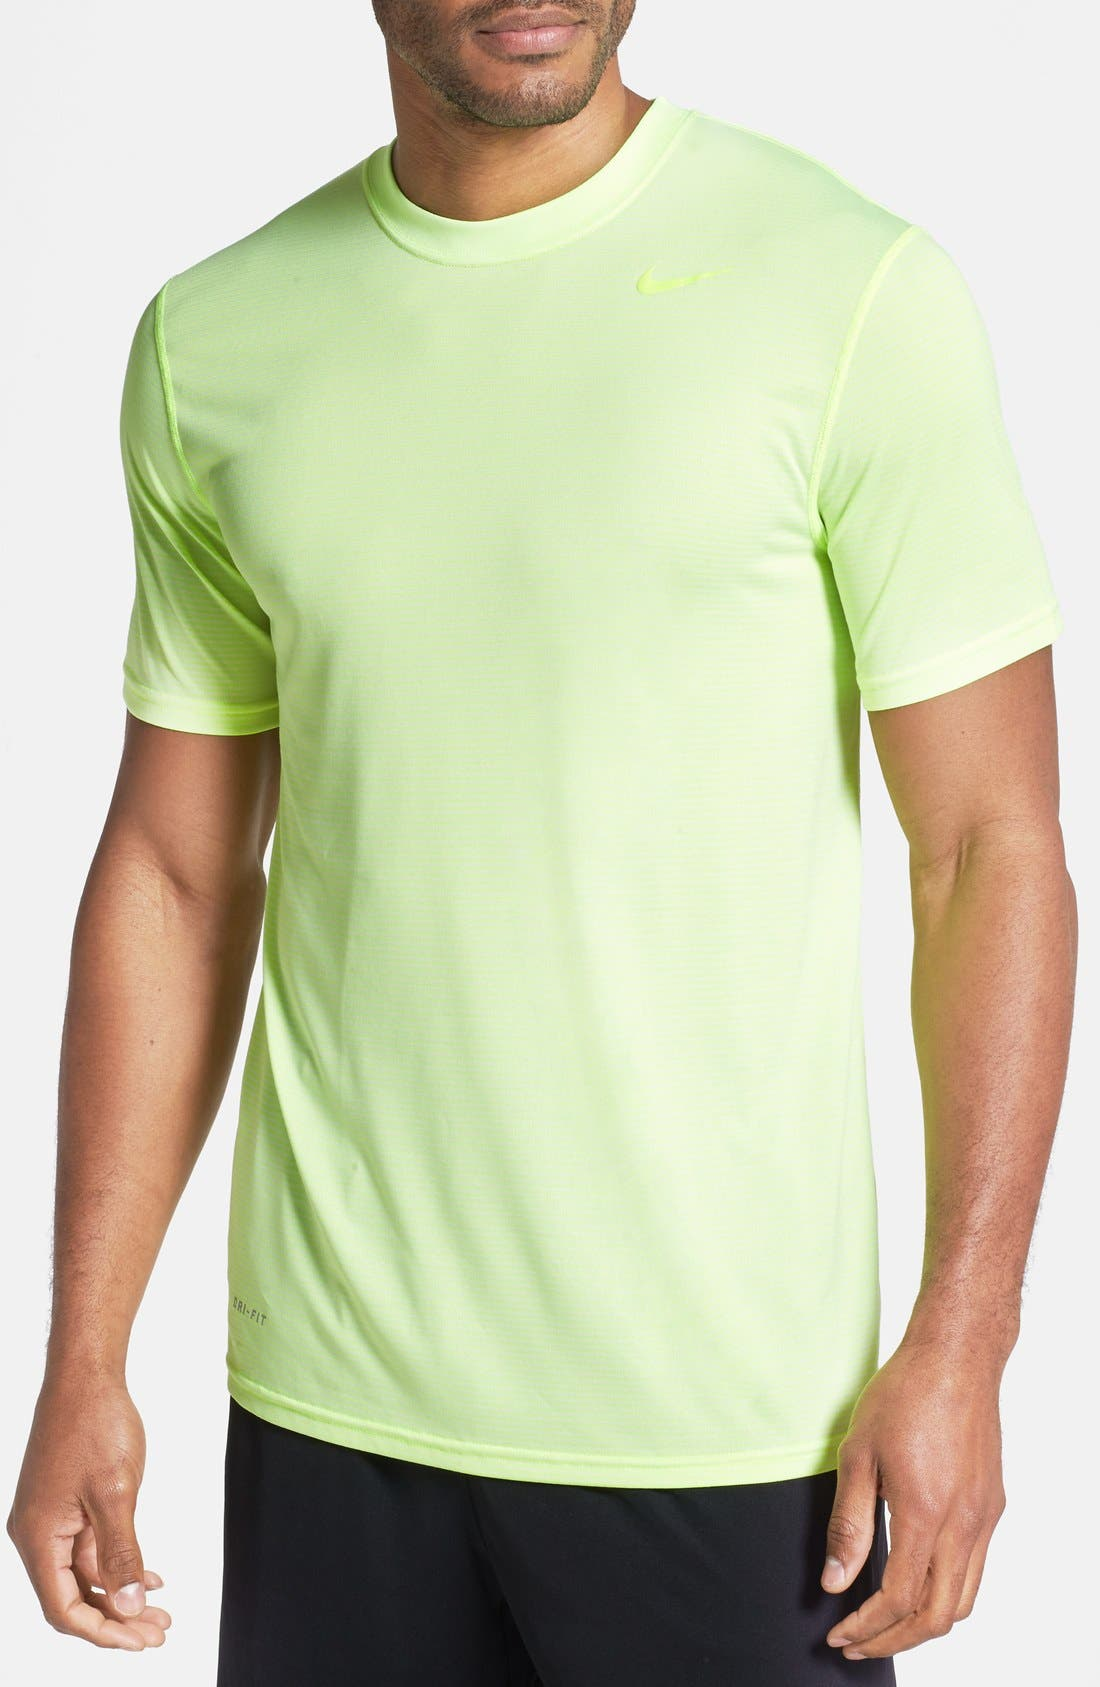 Main Image - Nike 'Dri-FIT Touch' Moisture Wicking T-Shirt